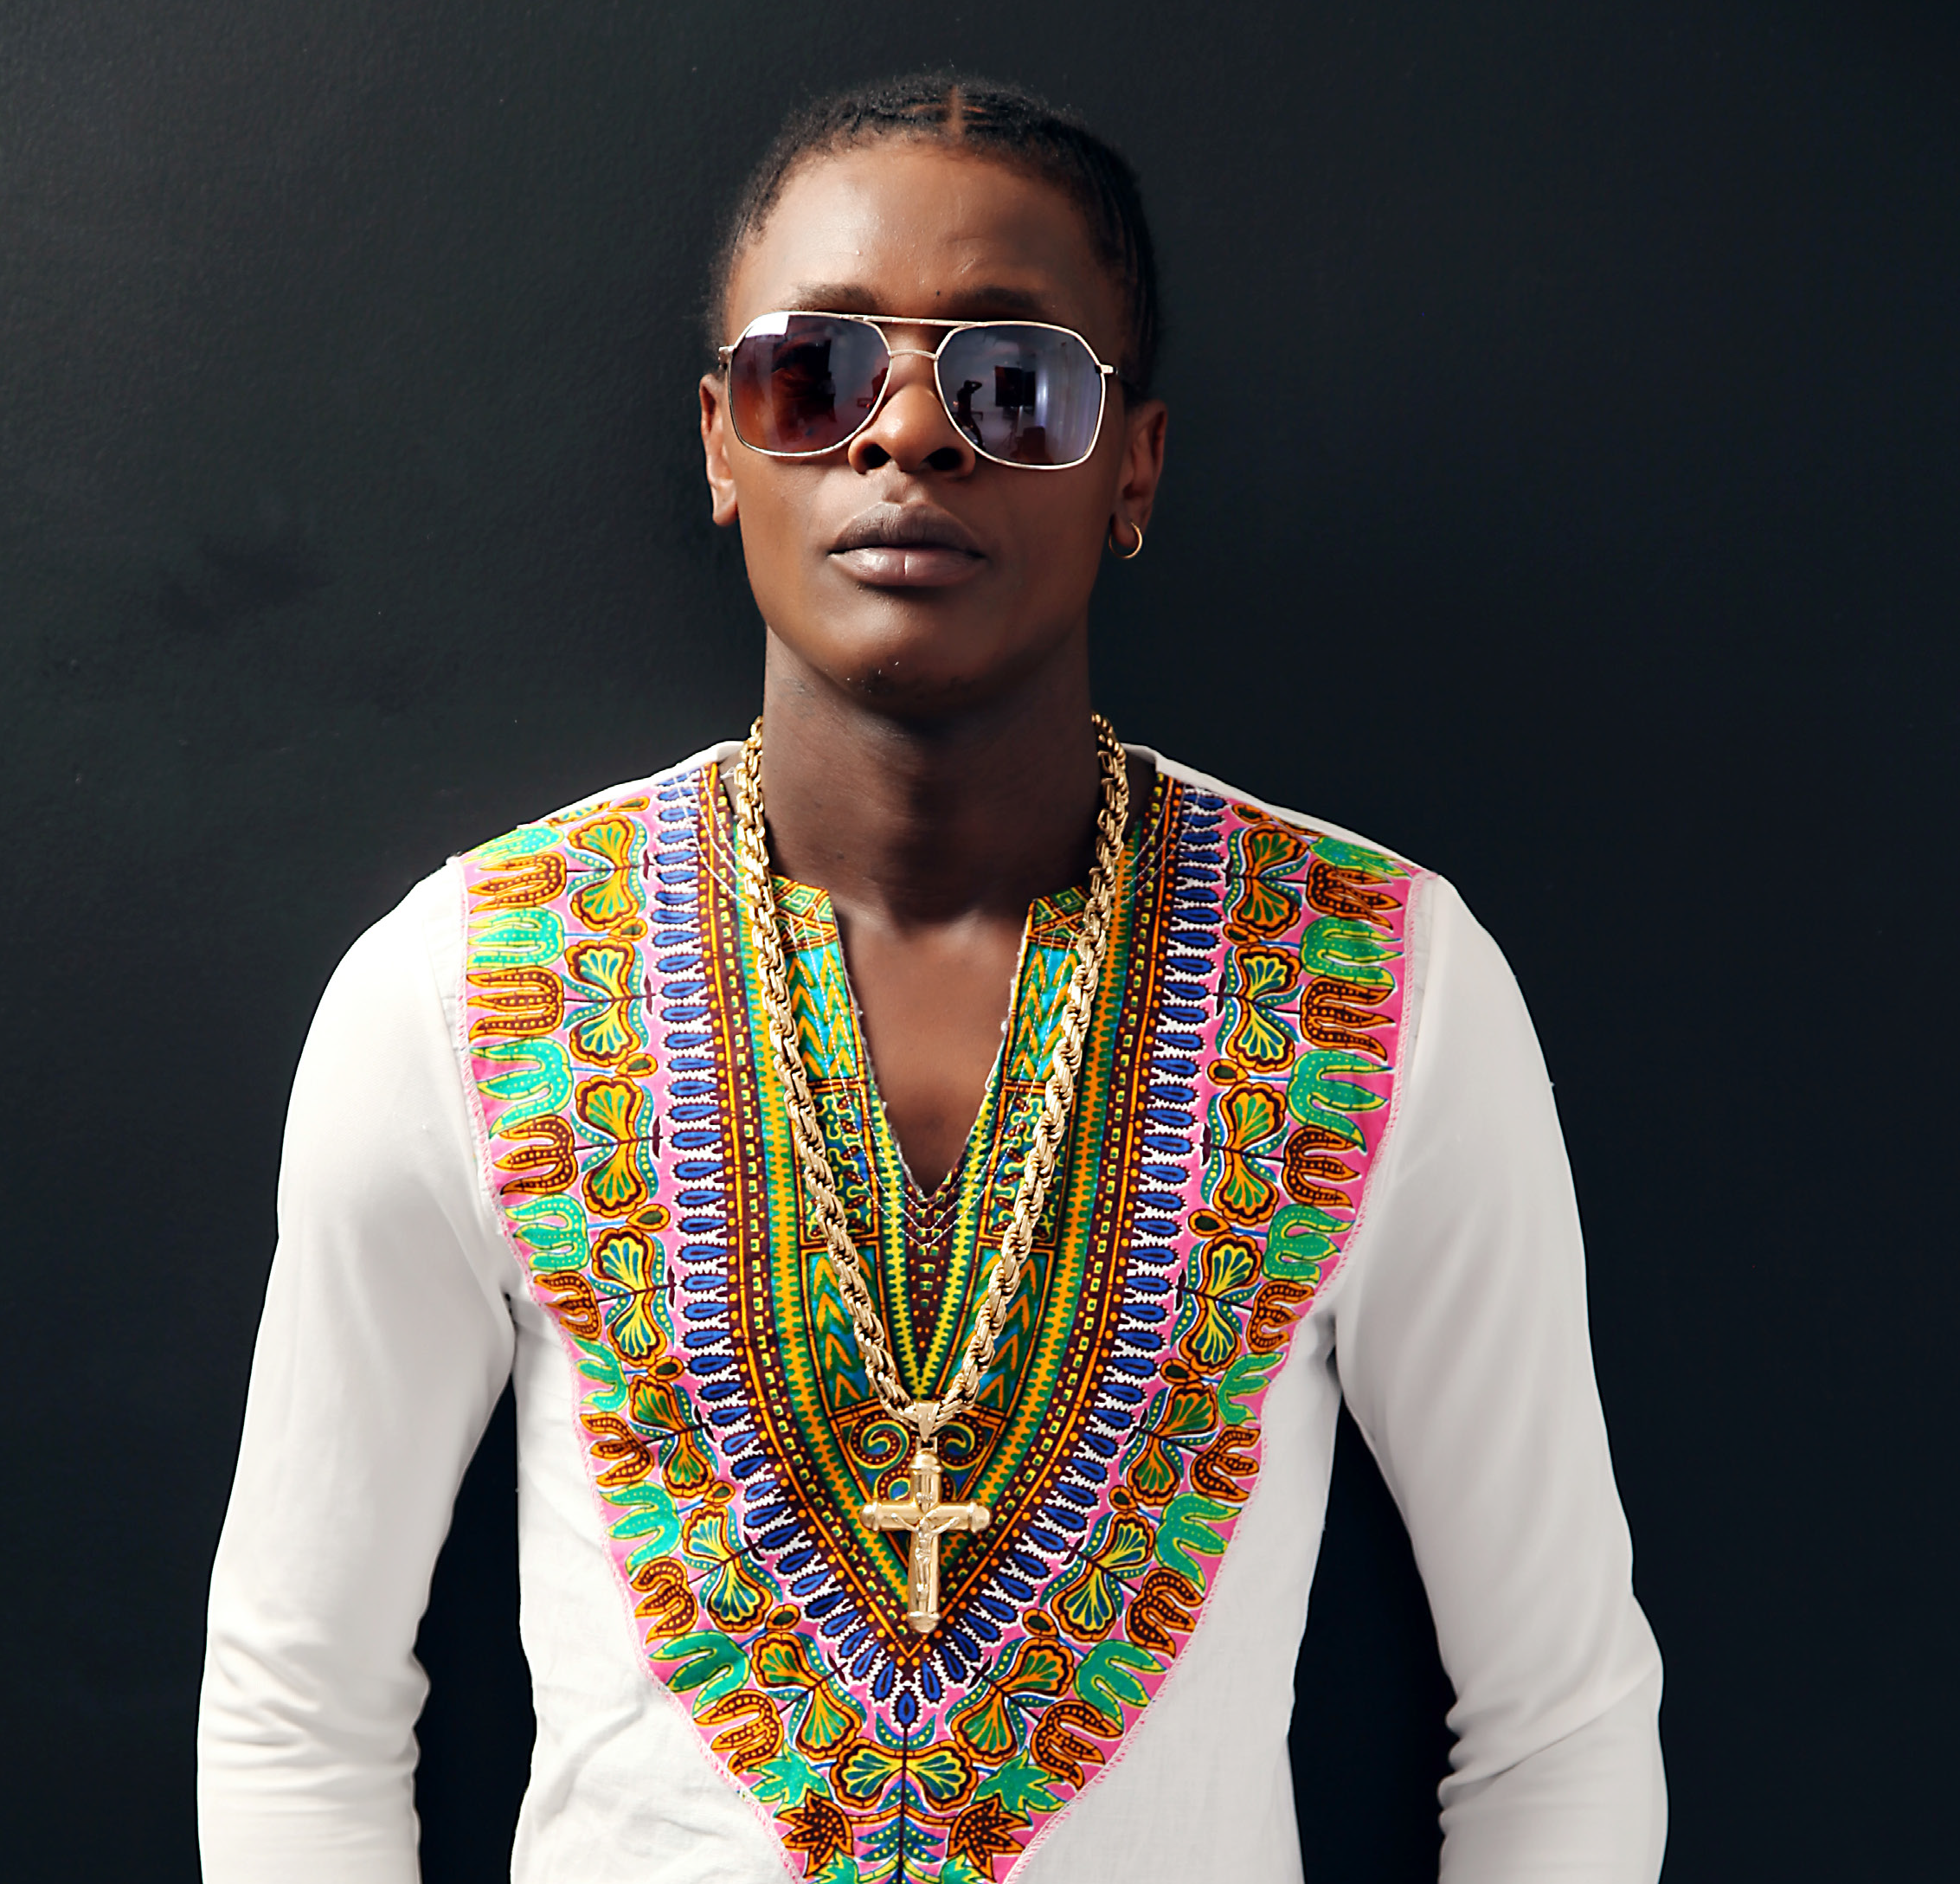 Jose Chameleone Starts A Talent Search To Counter Airtel